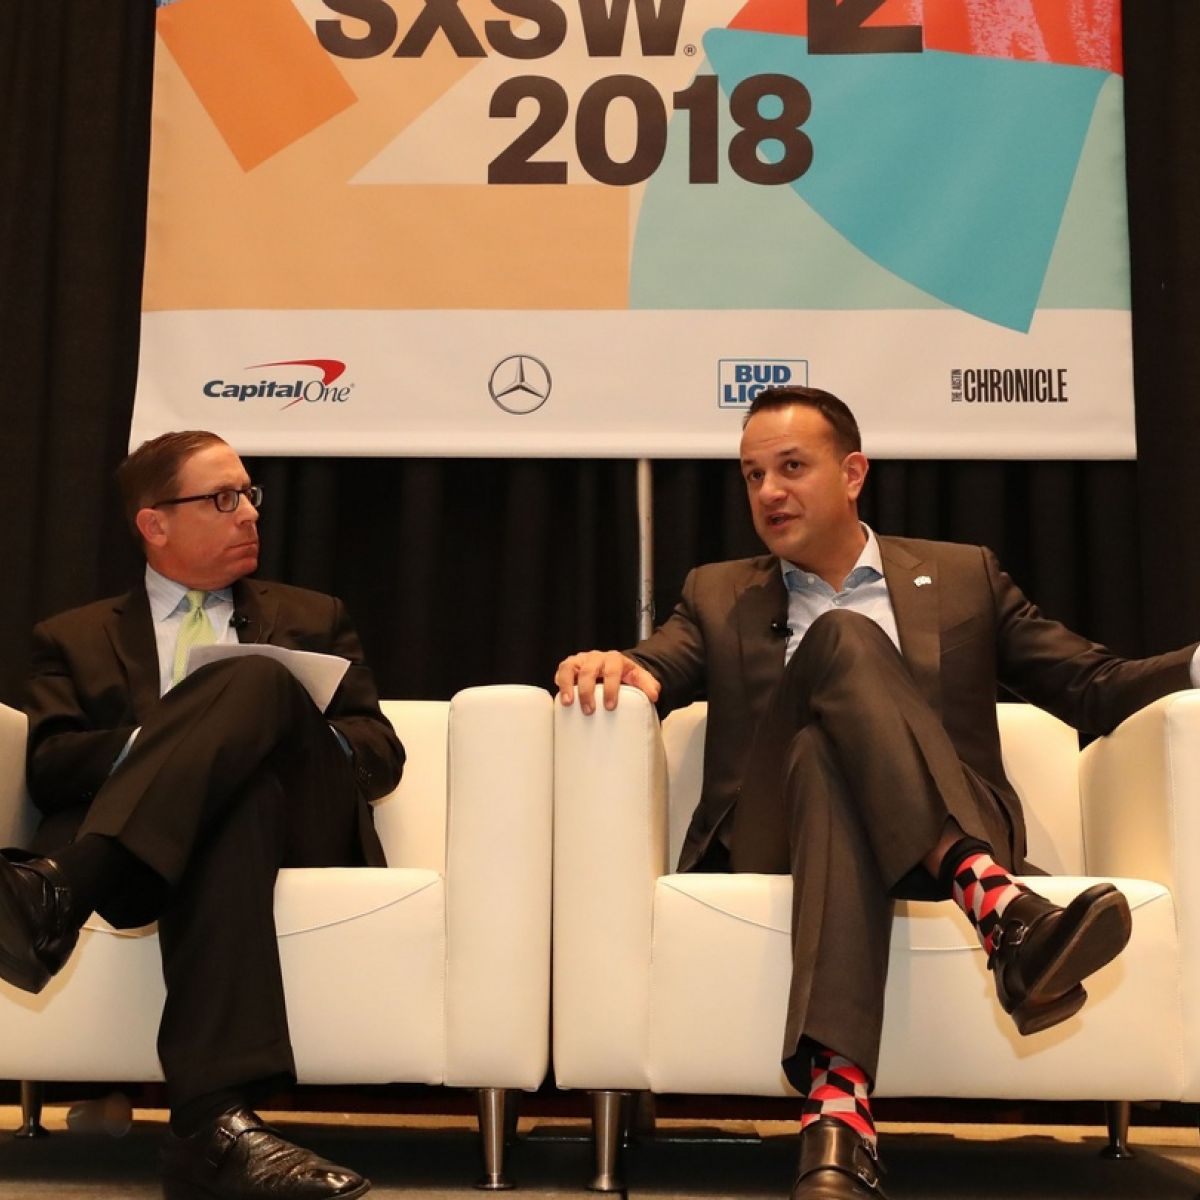 Irish tech firms make their mark at the ever-growing SXSW event